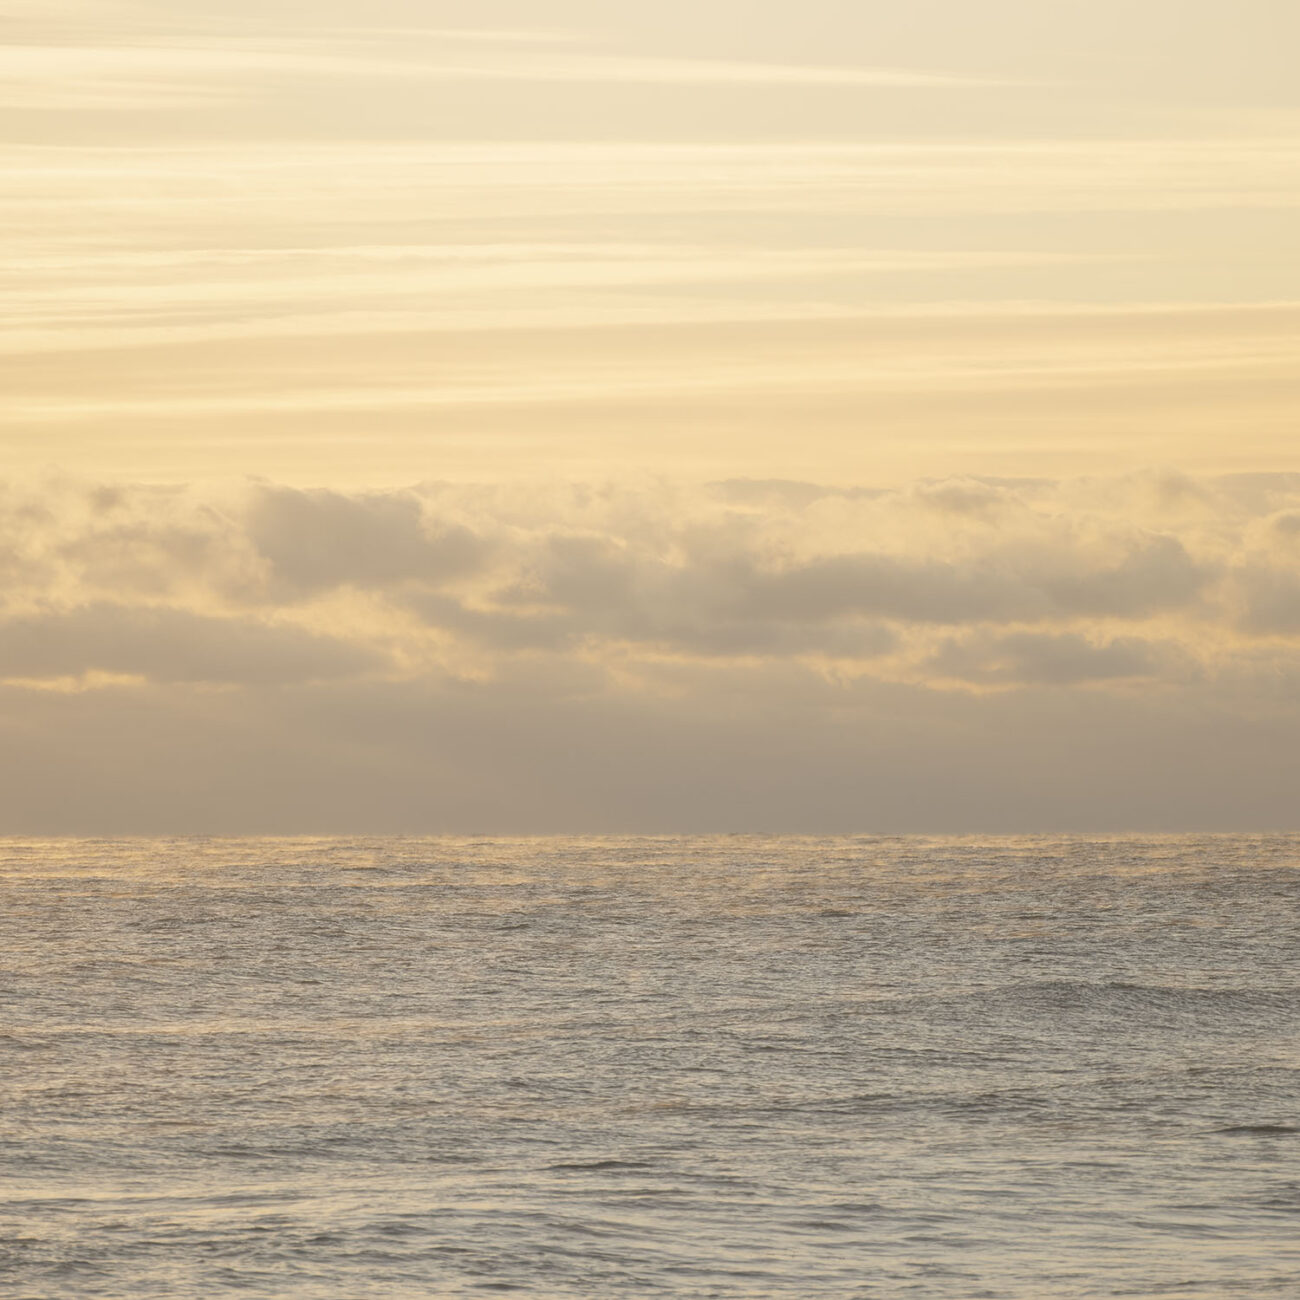 Ocean with morning clouds